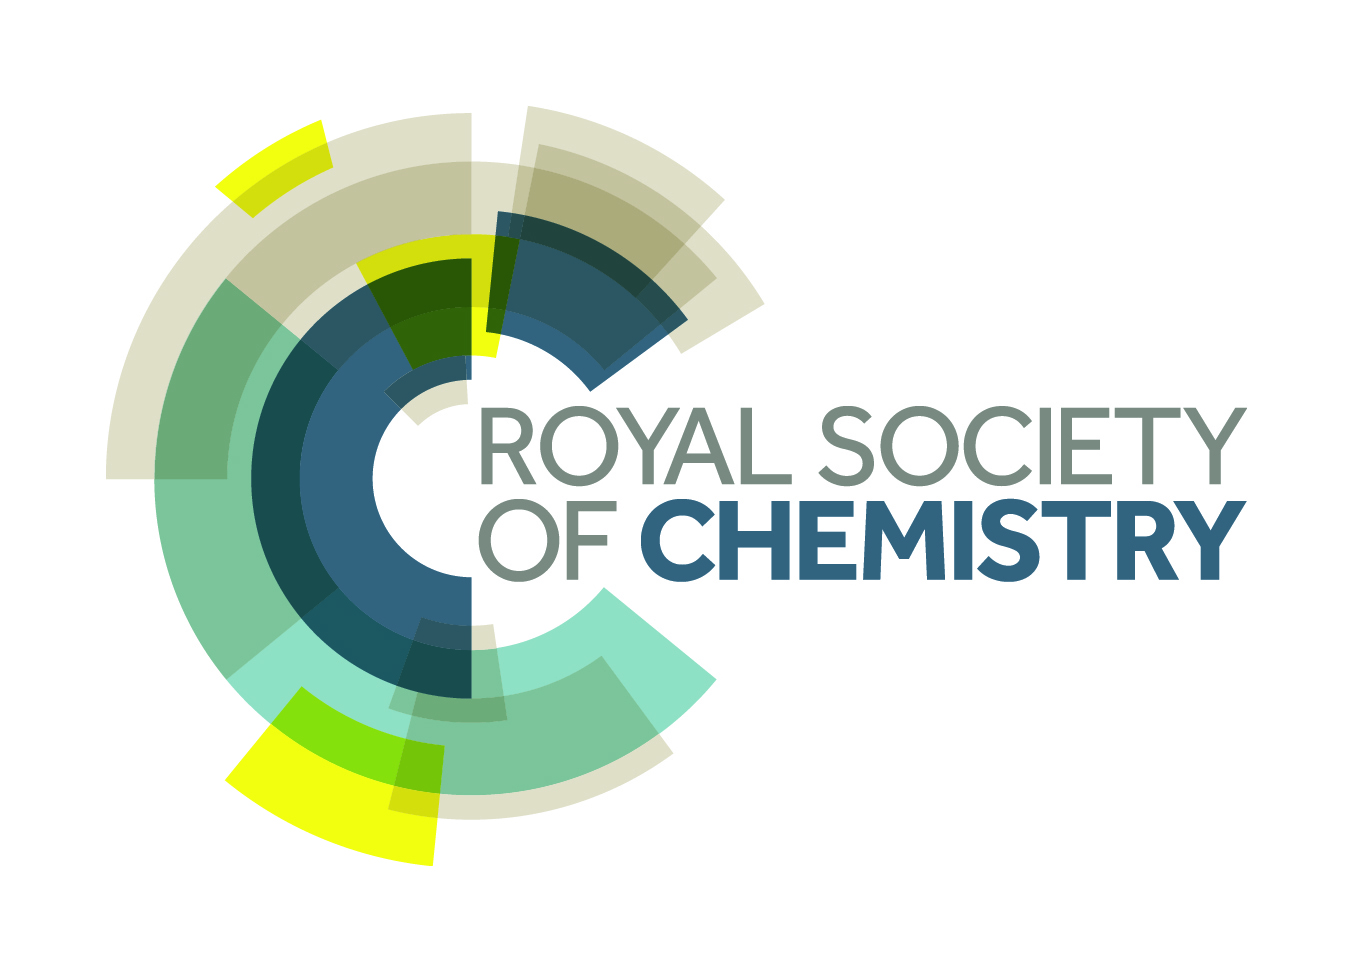 Leeds scientists win prestigious Royal Society of Chemistry prizes